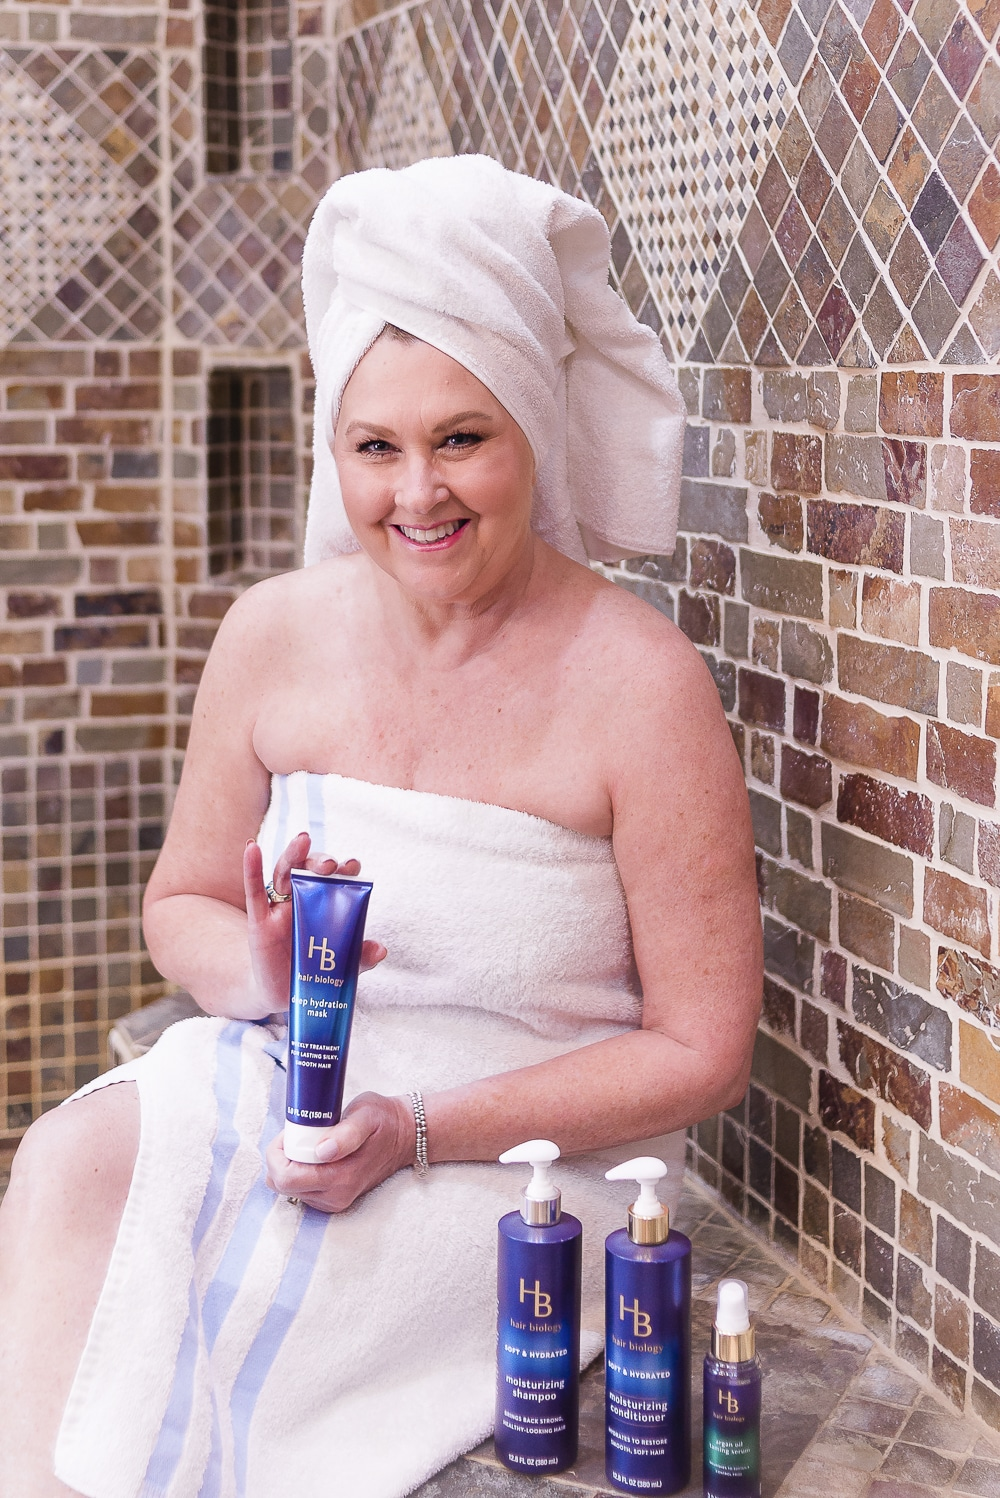 Fashion Blogger 50 Is Not Old with a towel on head holding hair products